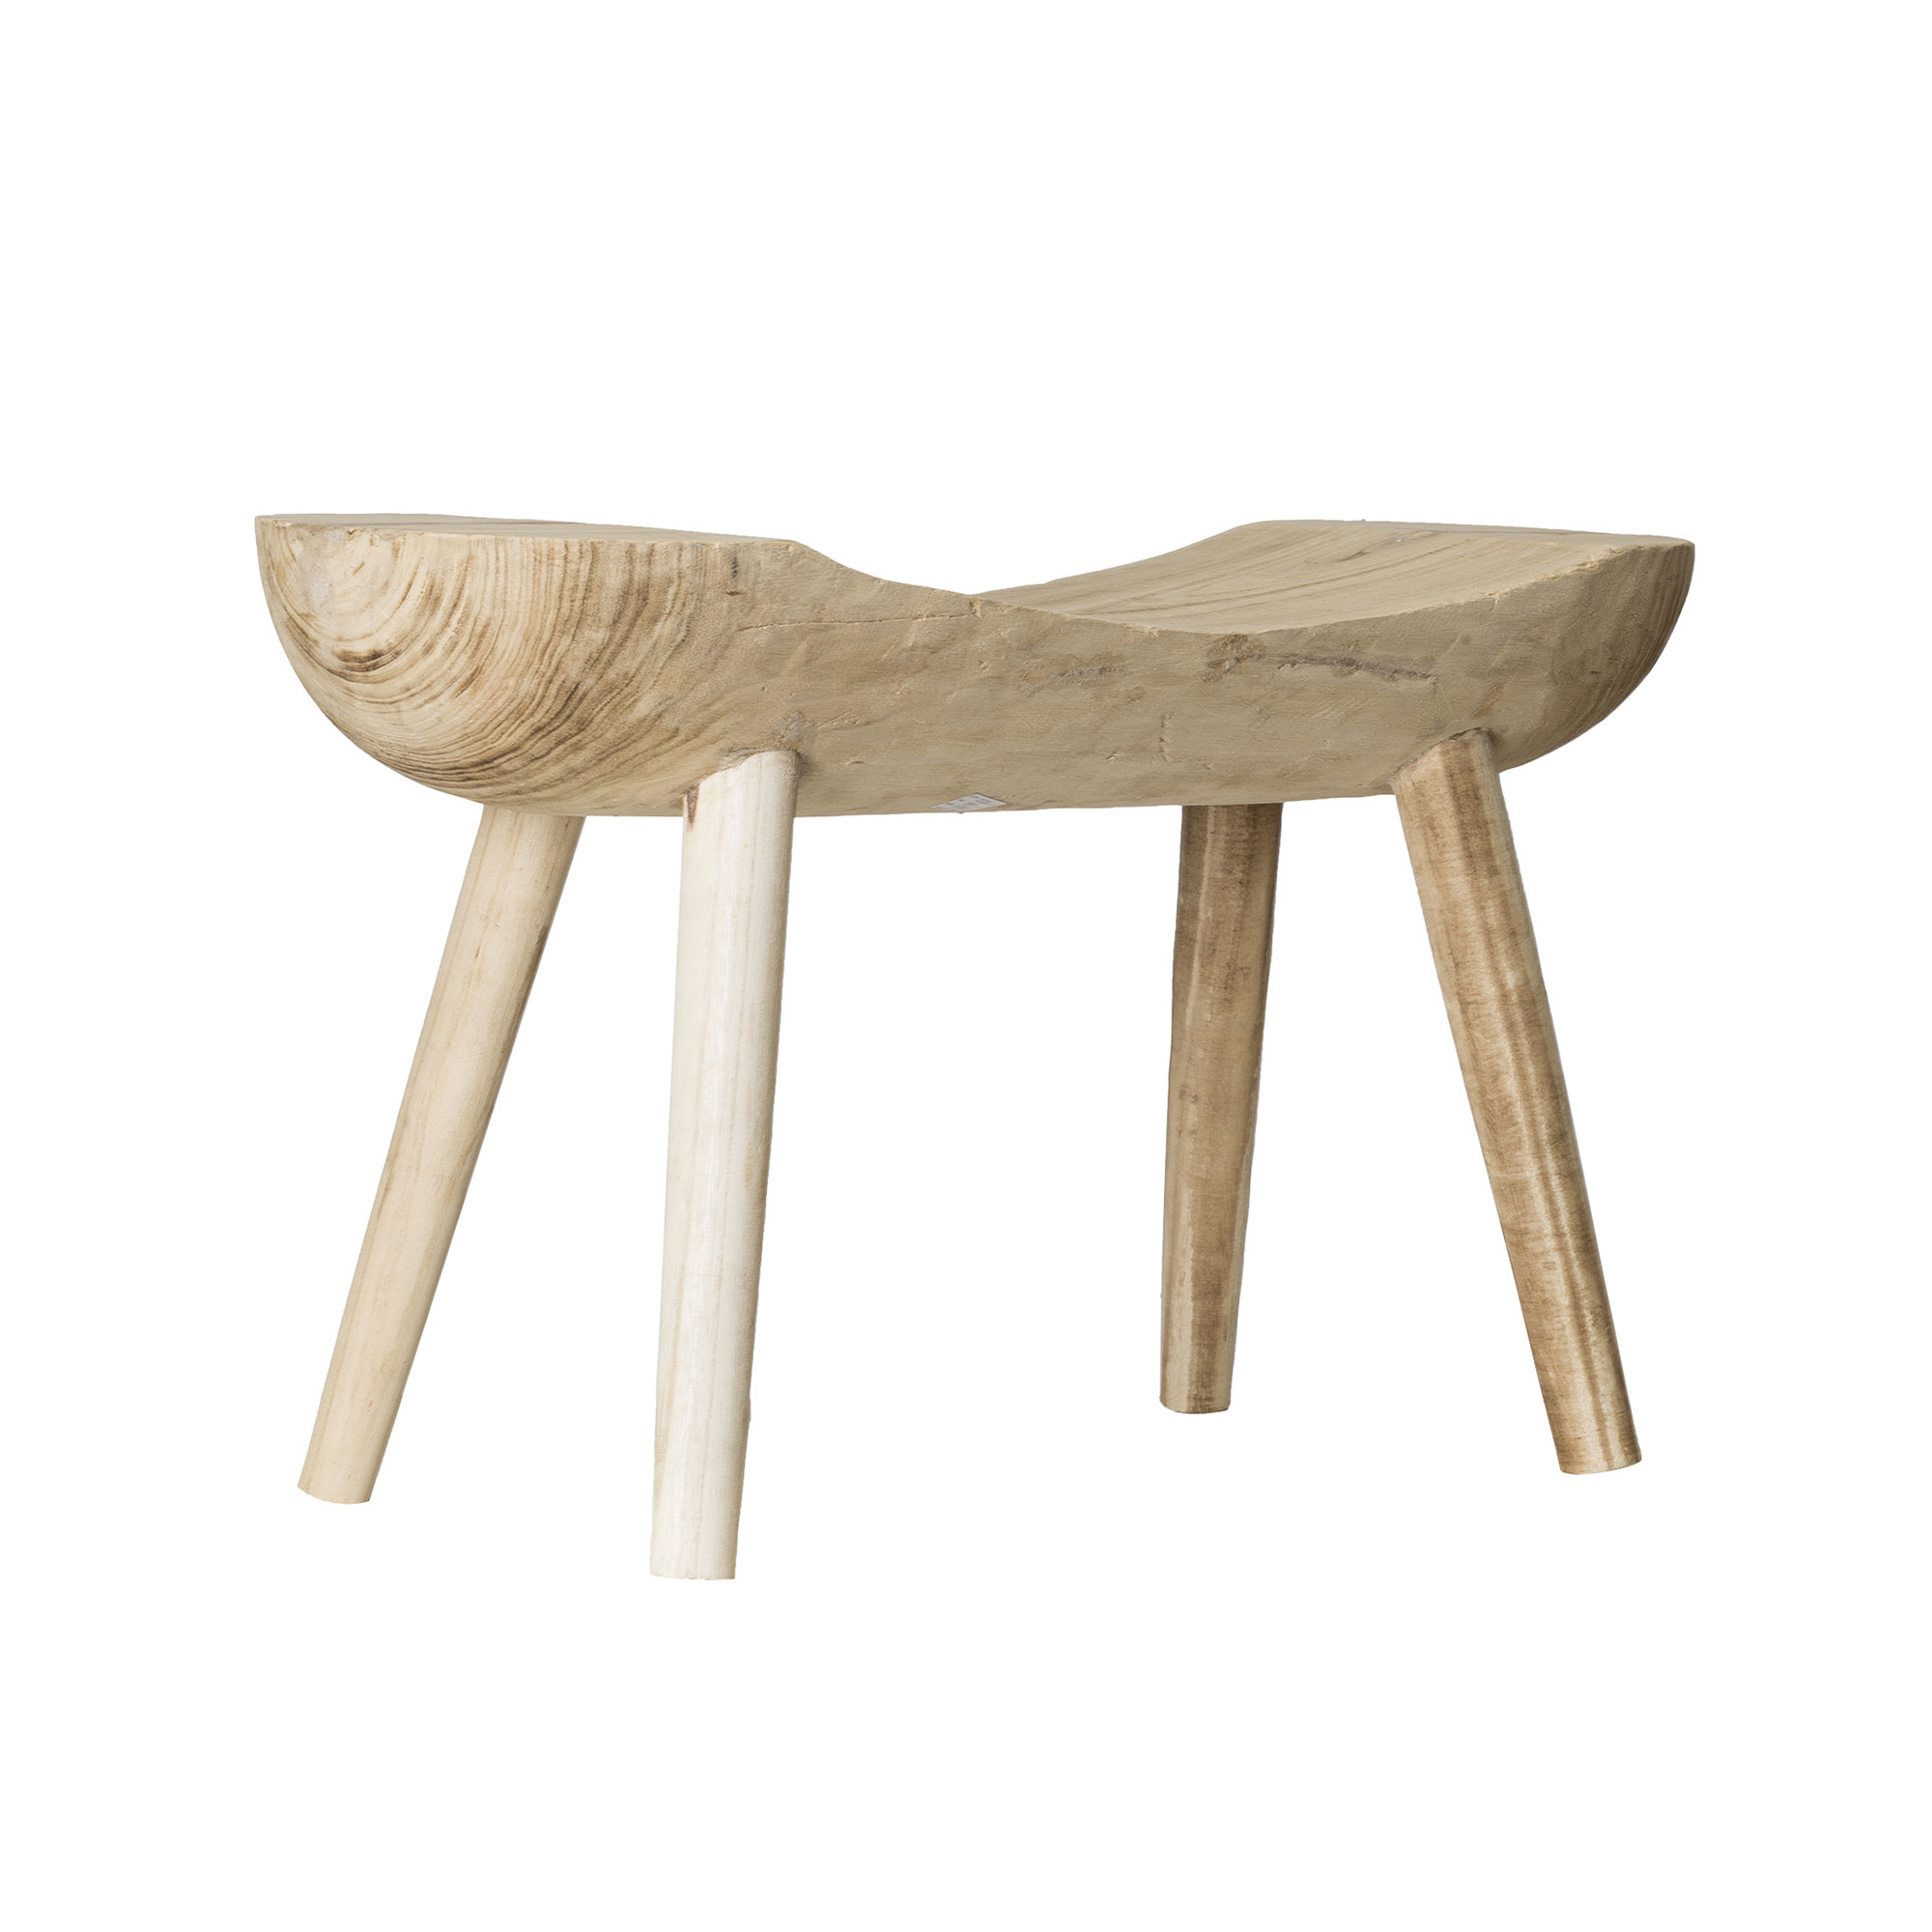 Bloomingville Ethnic stool - Natural Wood - L80xH44xW27cm - Bloomingville